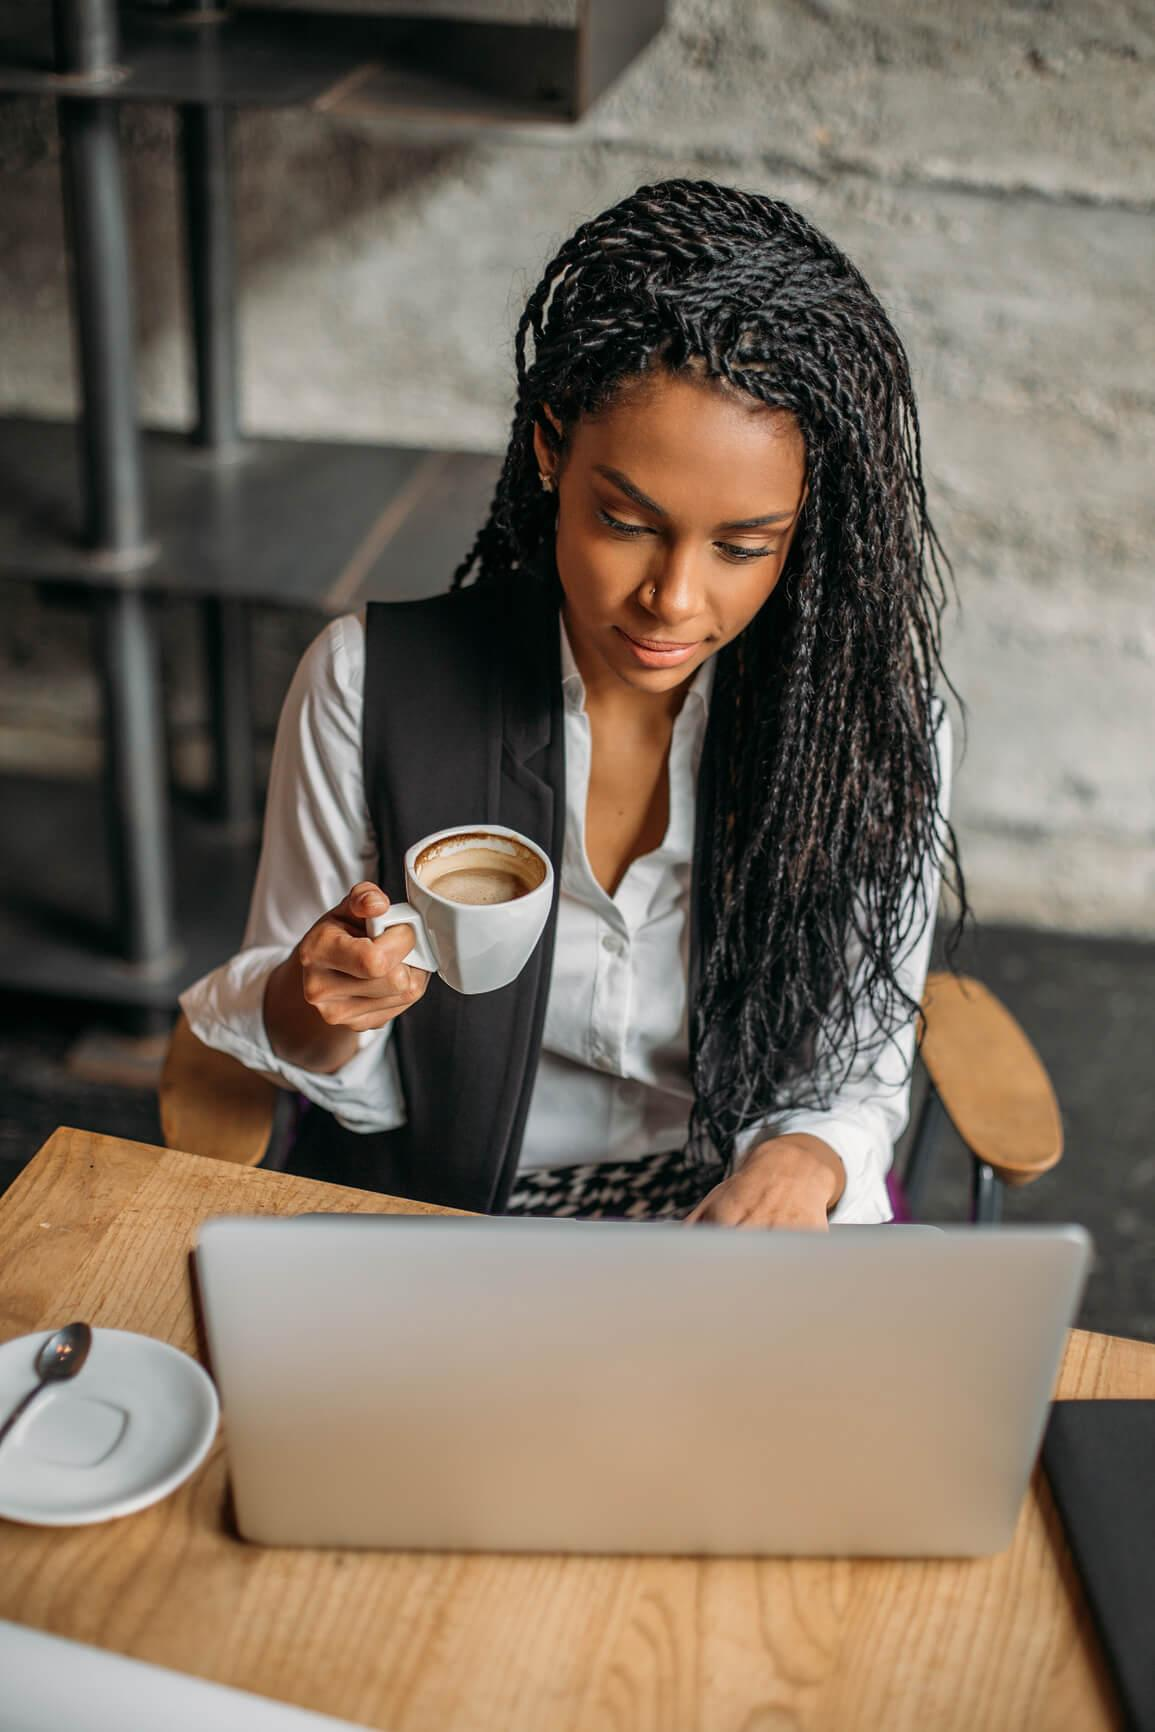 woman looking at her laptop while holding coffee